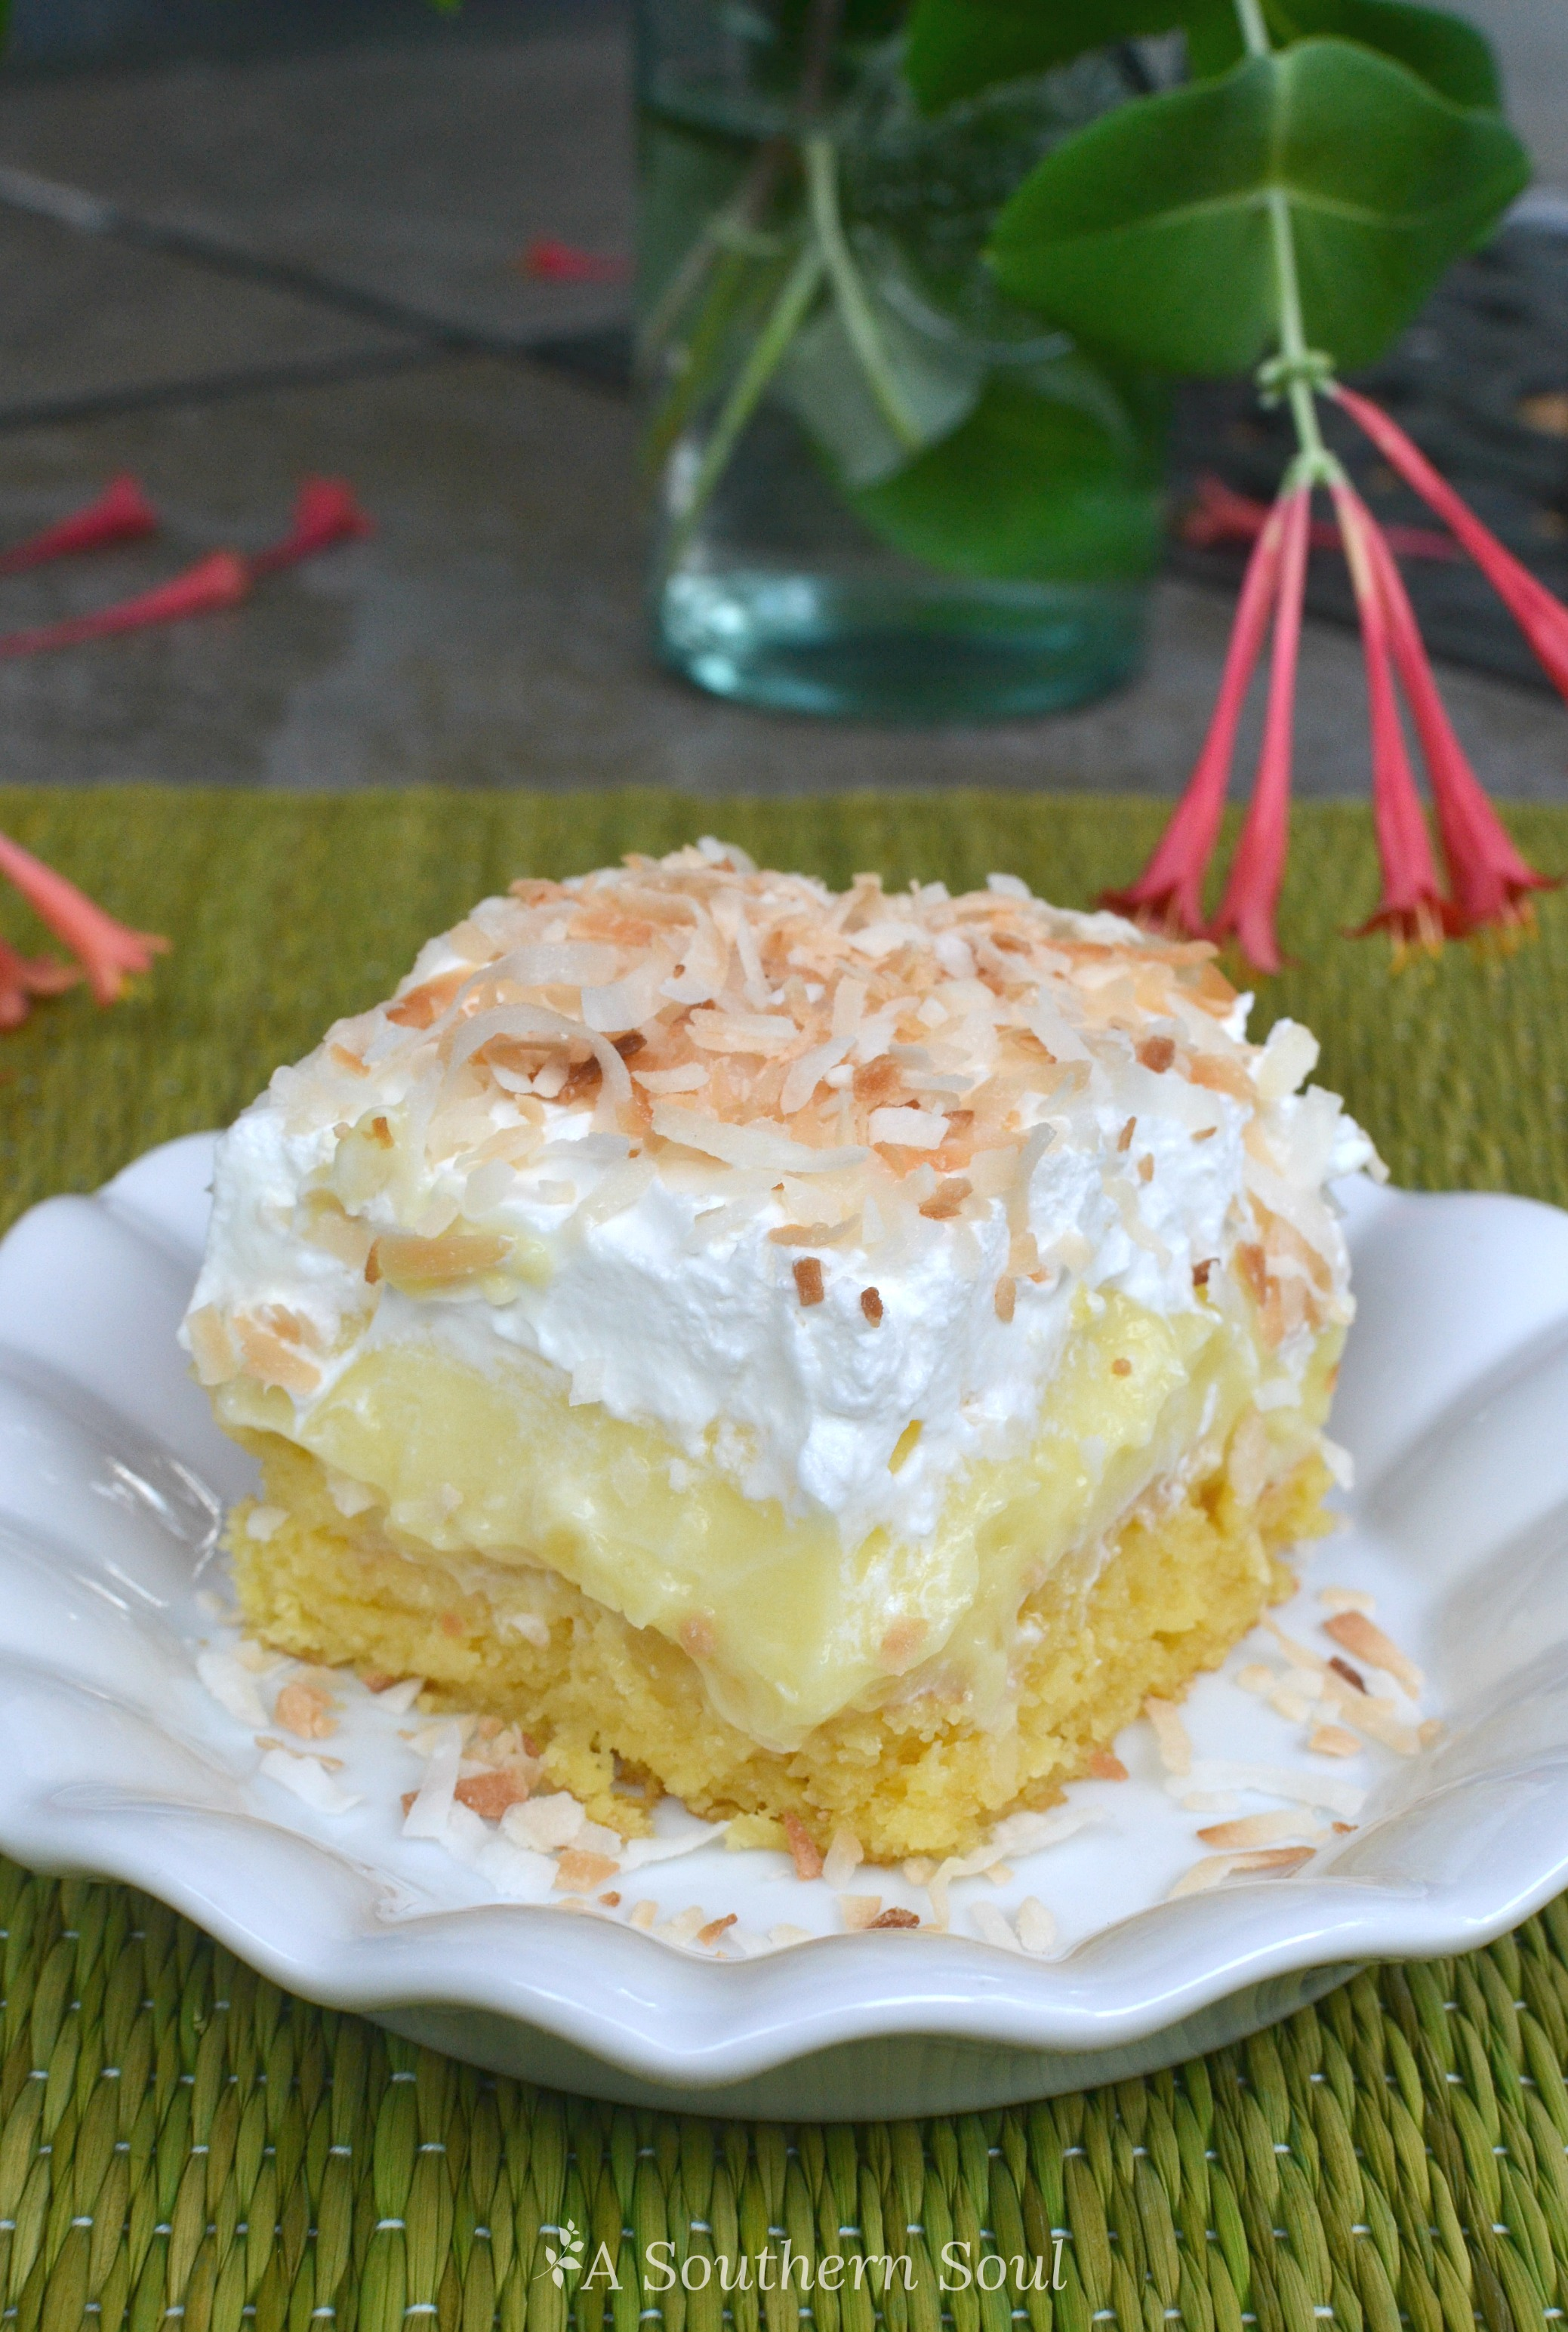 How To Make Pineapple Cake From Box